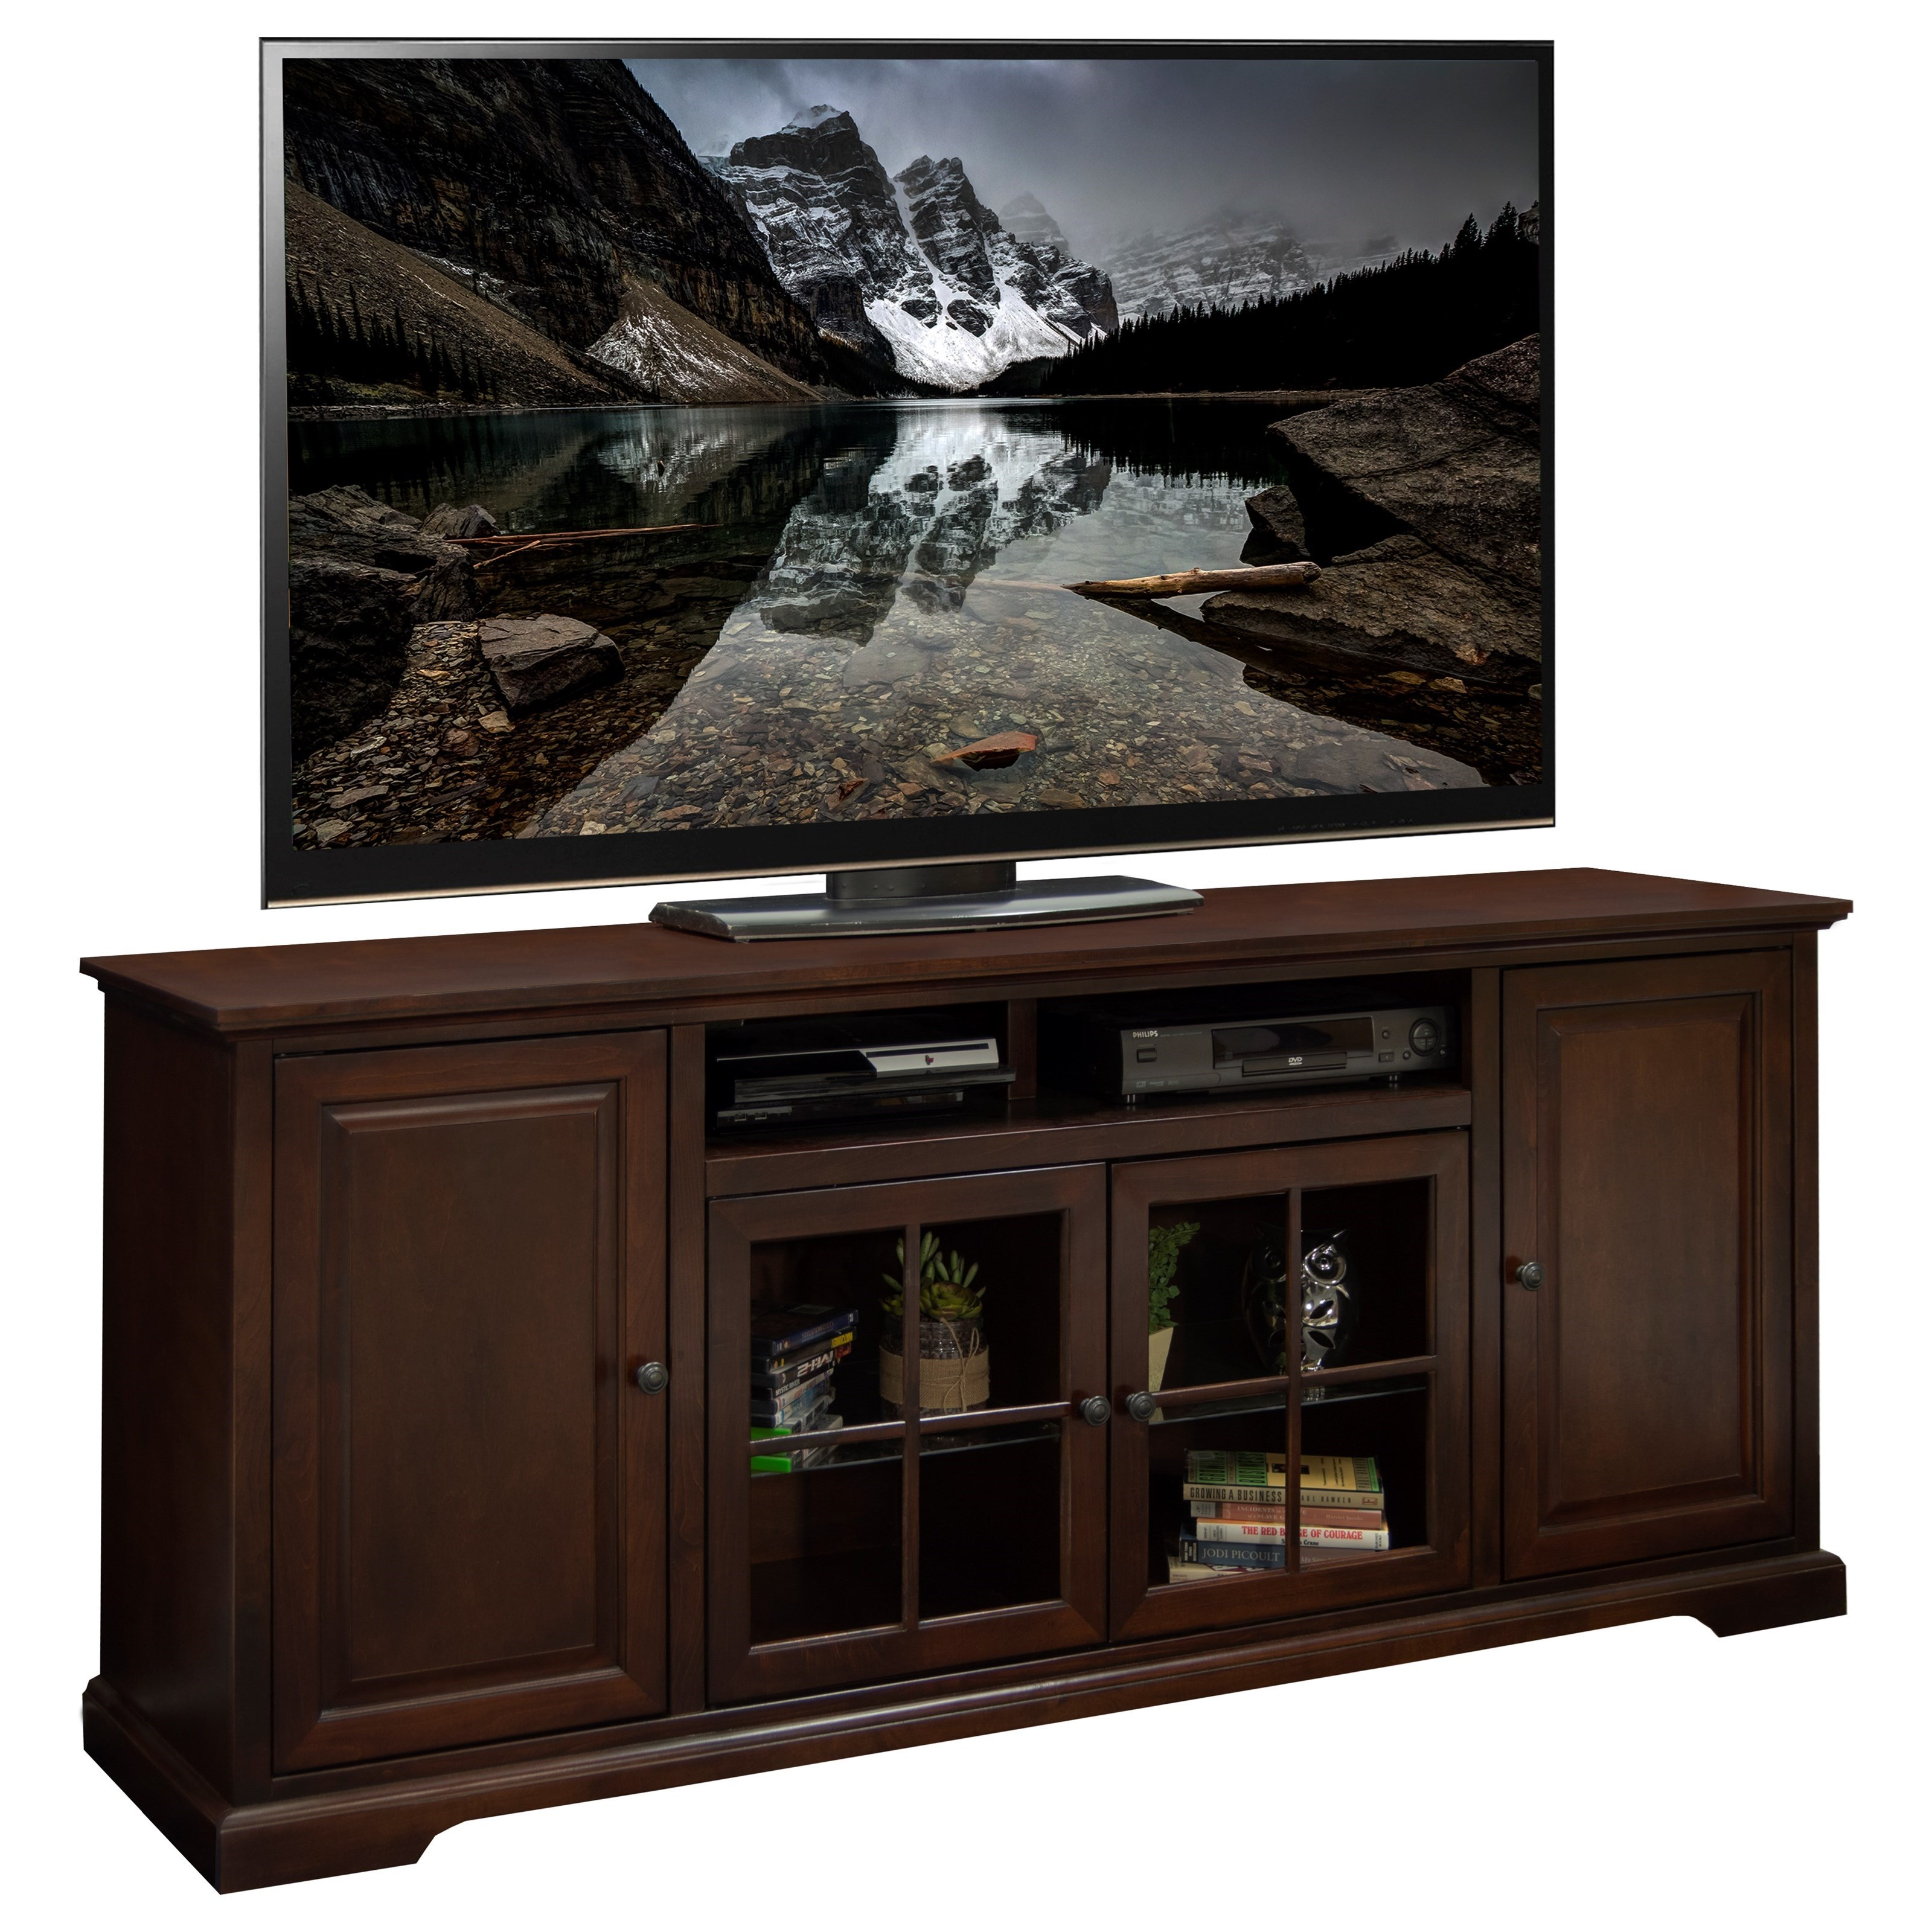 "Legends Furniture Brentwood Brentwood 78"" TV Console - Item Number: BW1578.DNC"